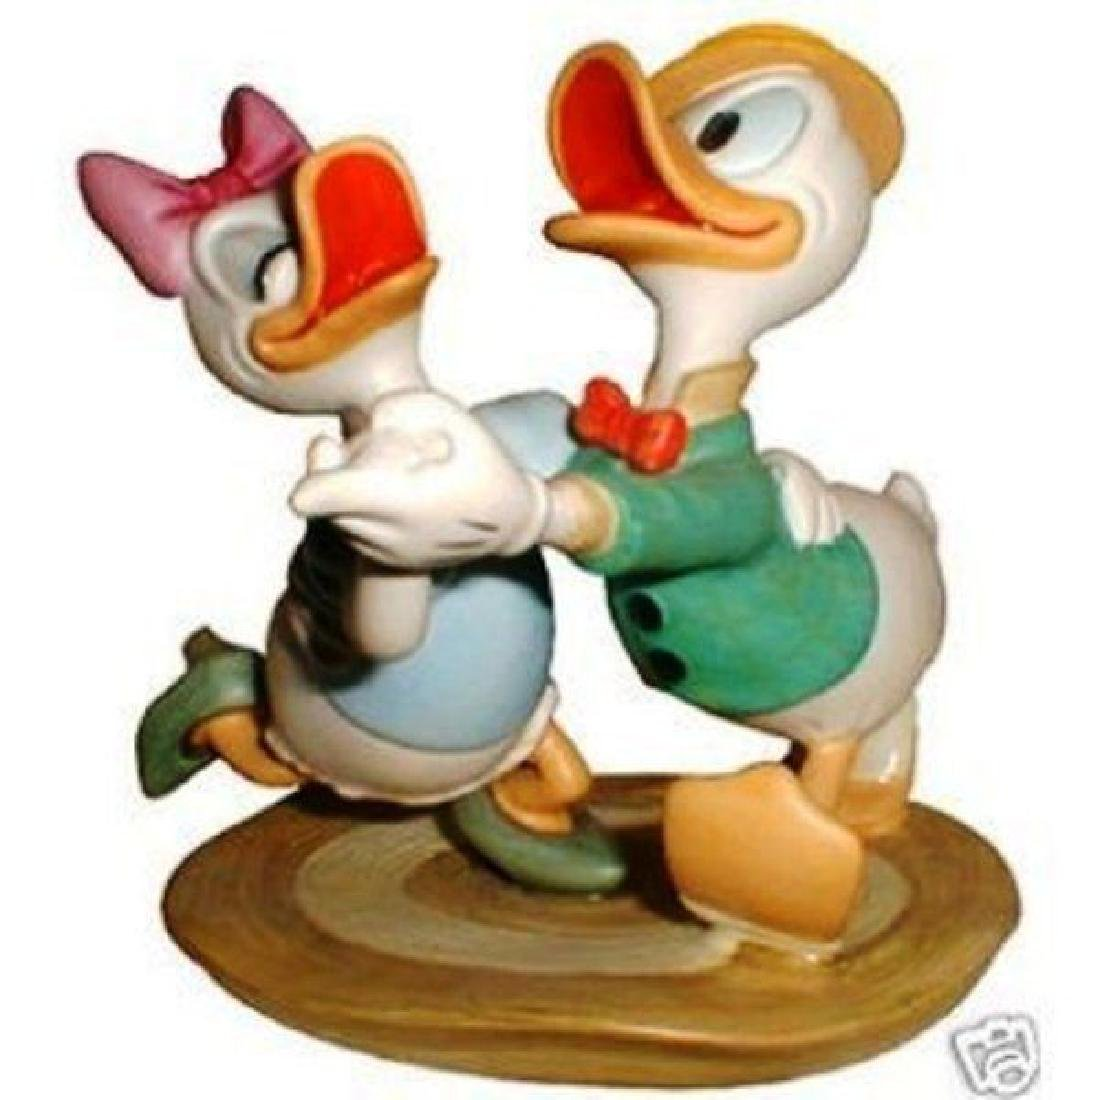 WDCC DISNEY CLASSIC-DONALD & DAISY FROM MR DUCK STEPS